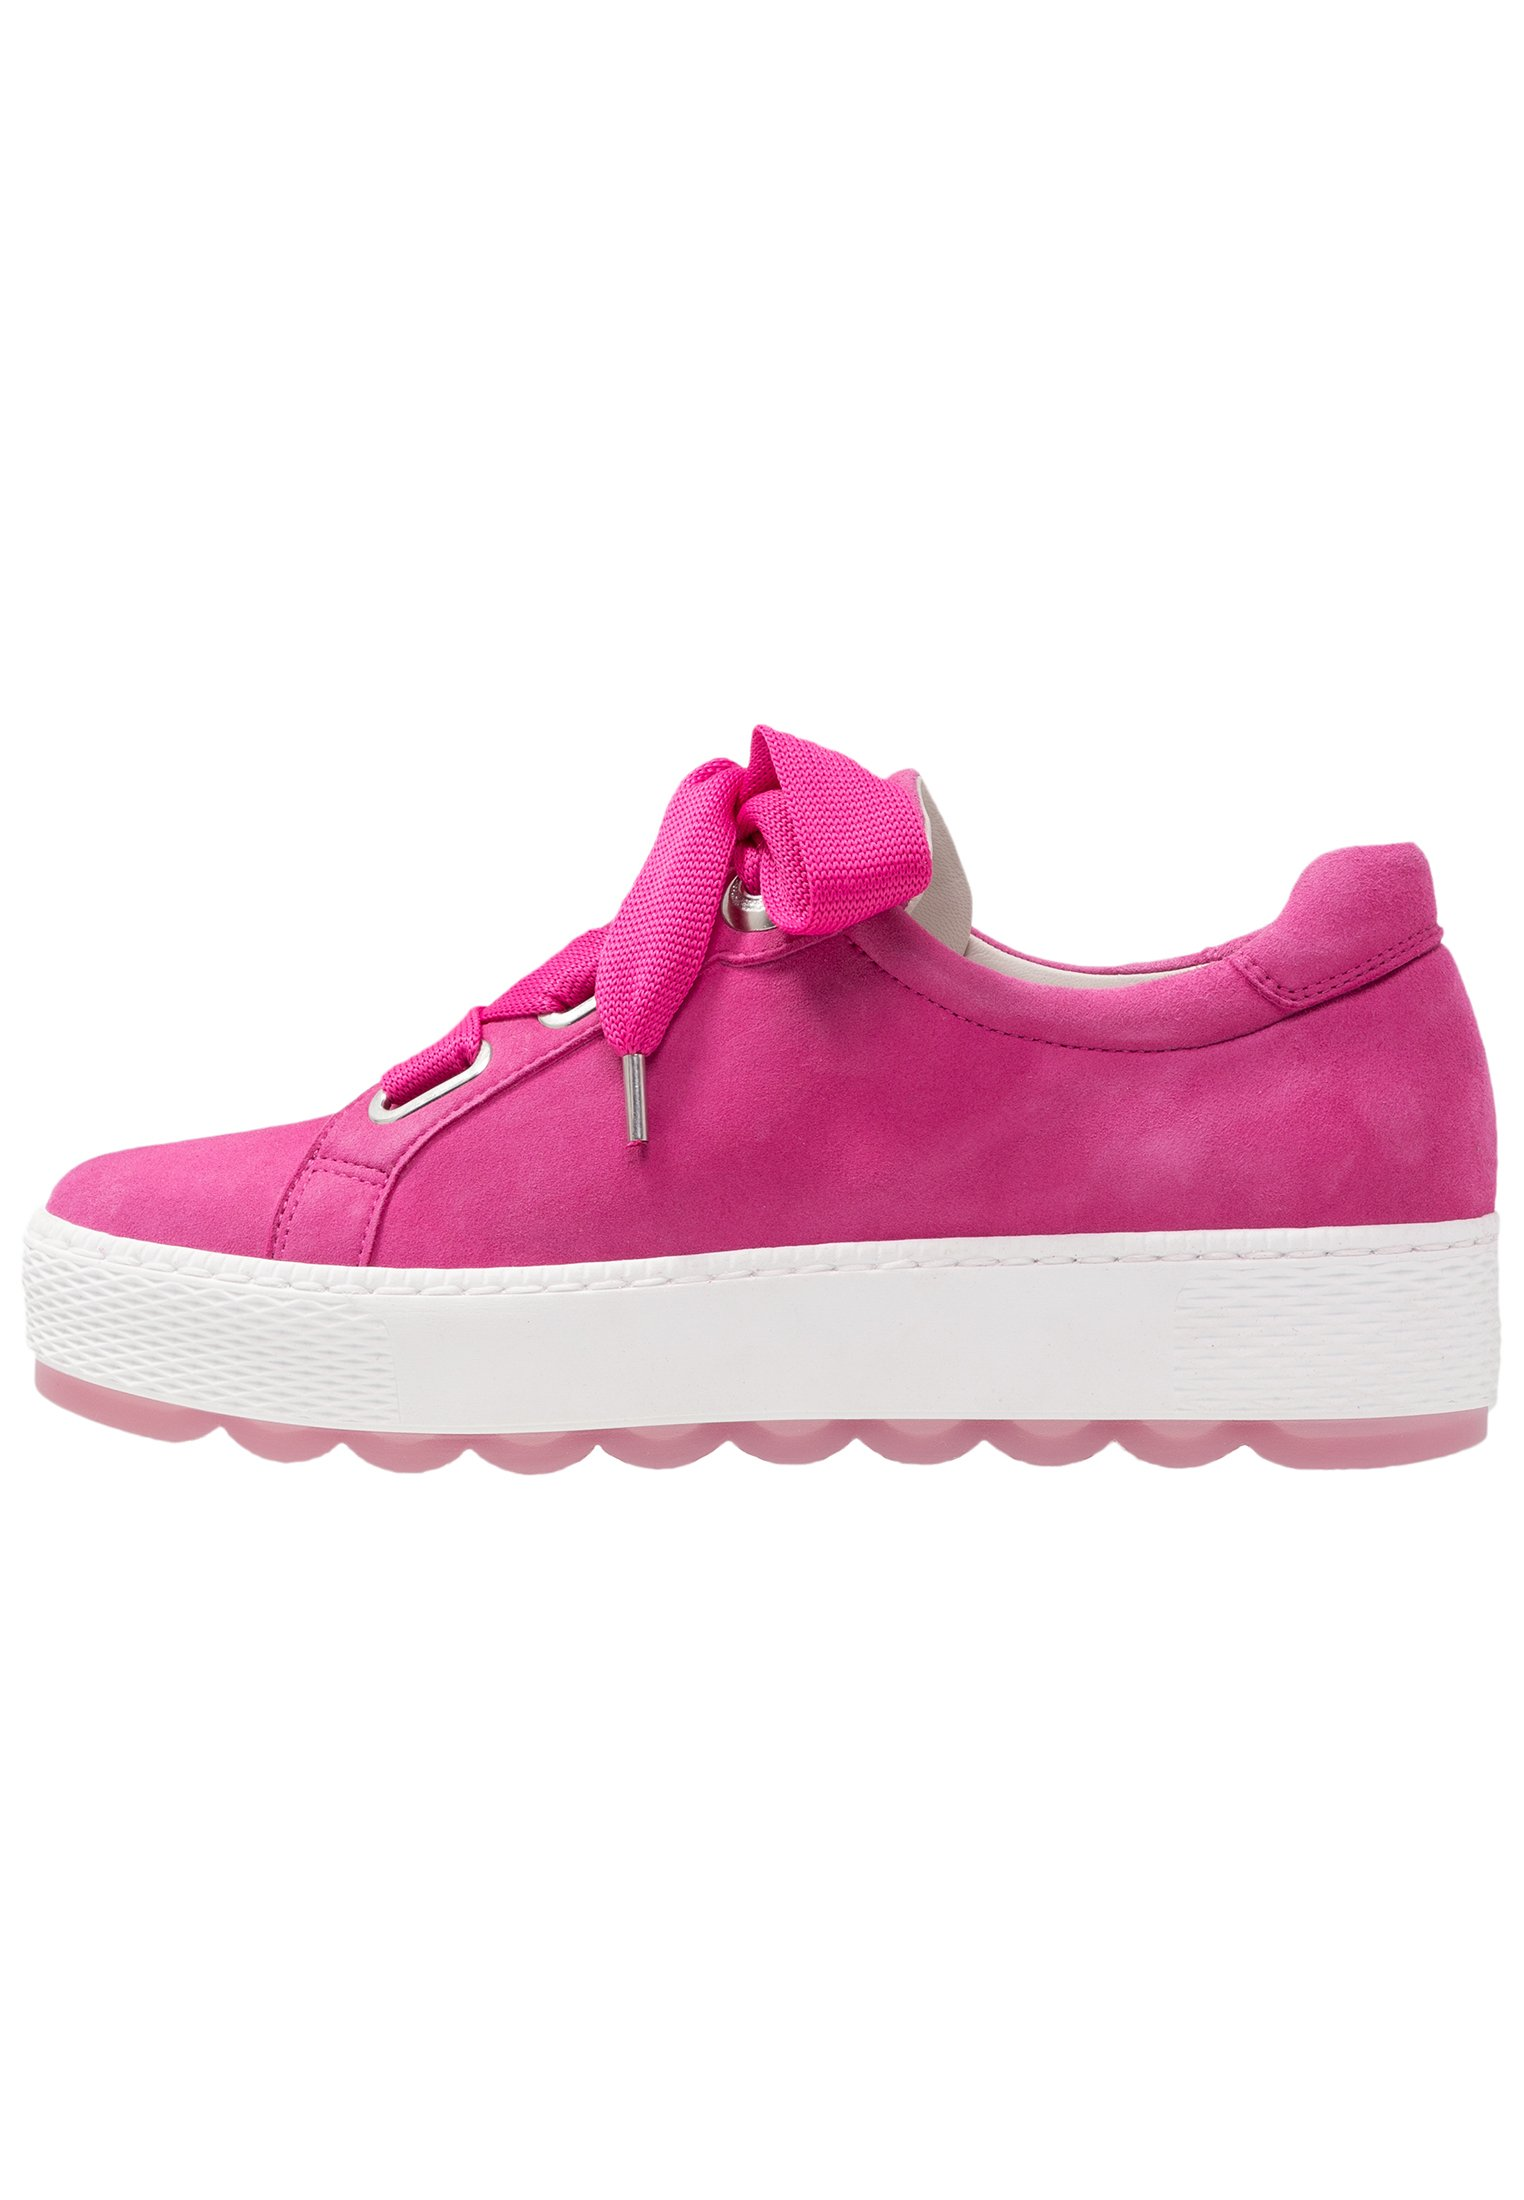 WIDE FIT Sneakers fuchsia